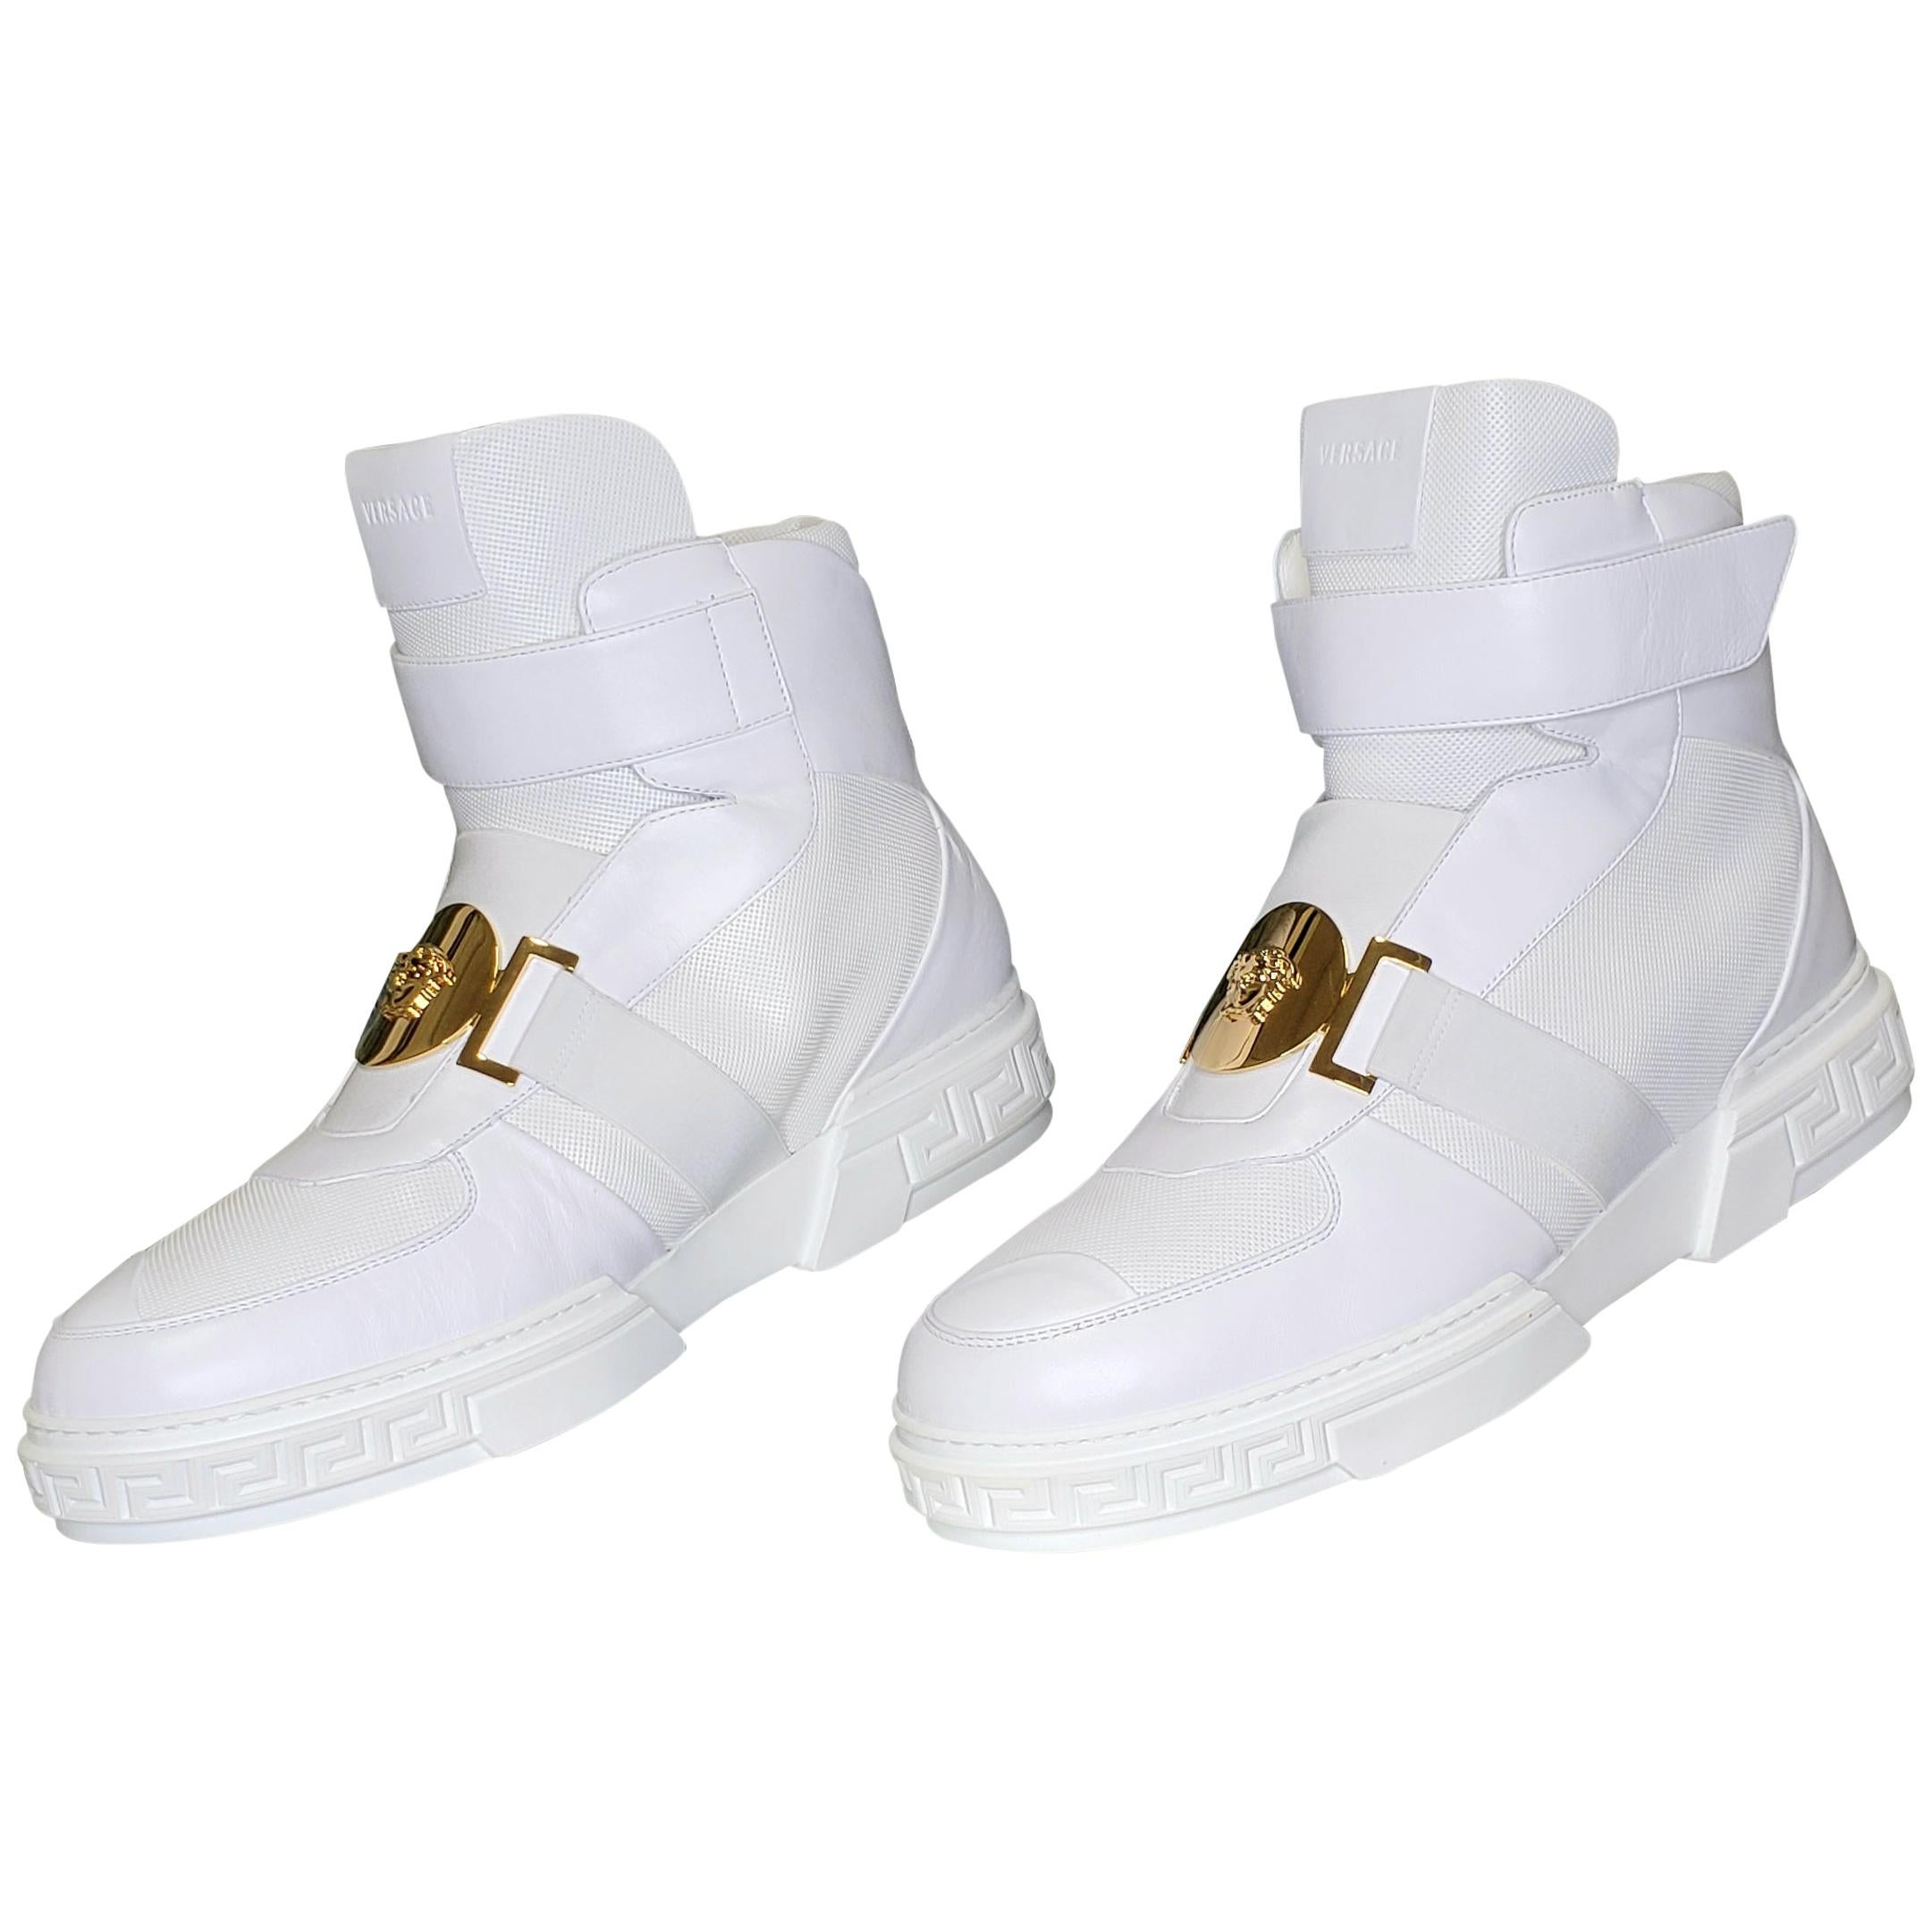 WHITE LEATHER SNEAKERS GOLD MEDUSA 46